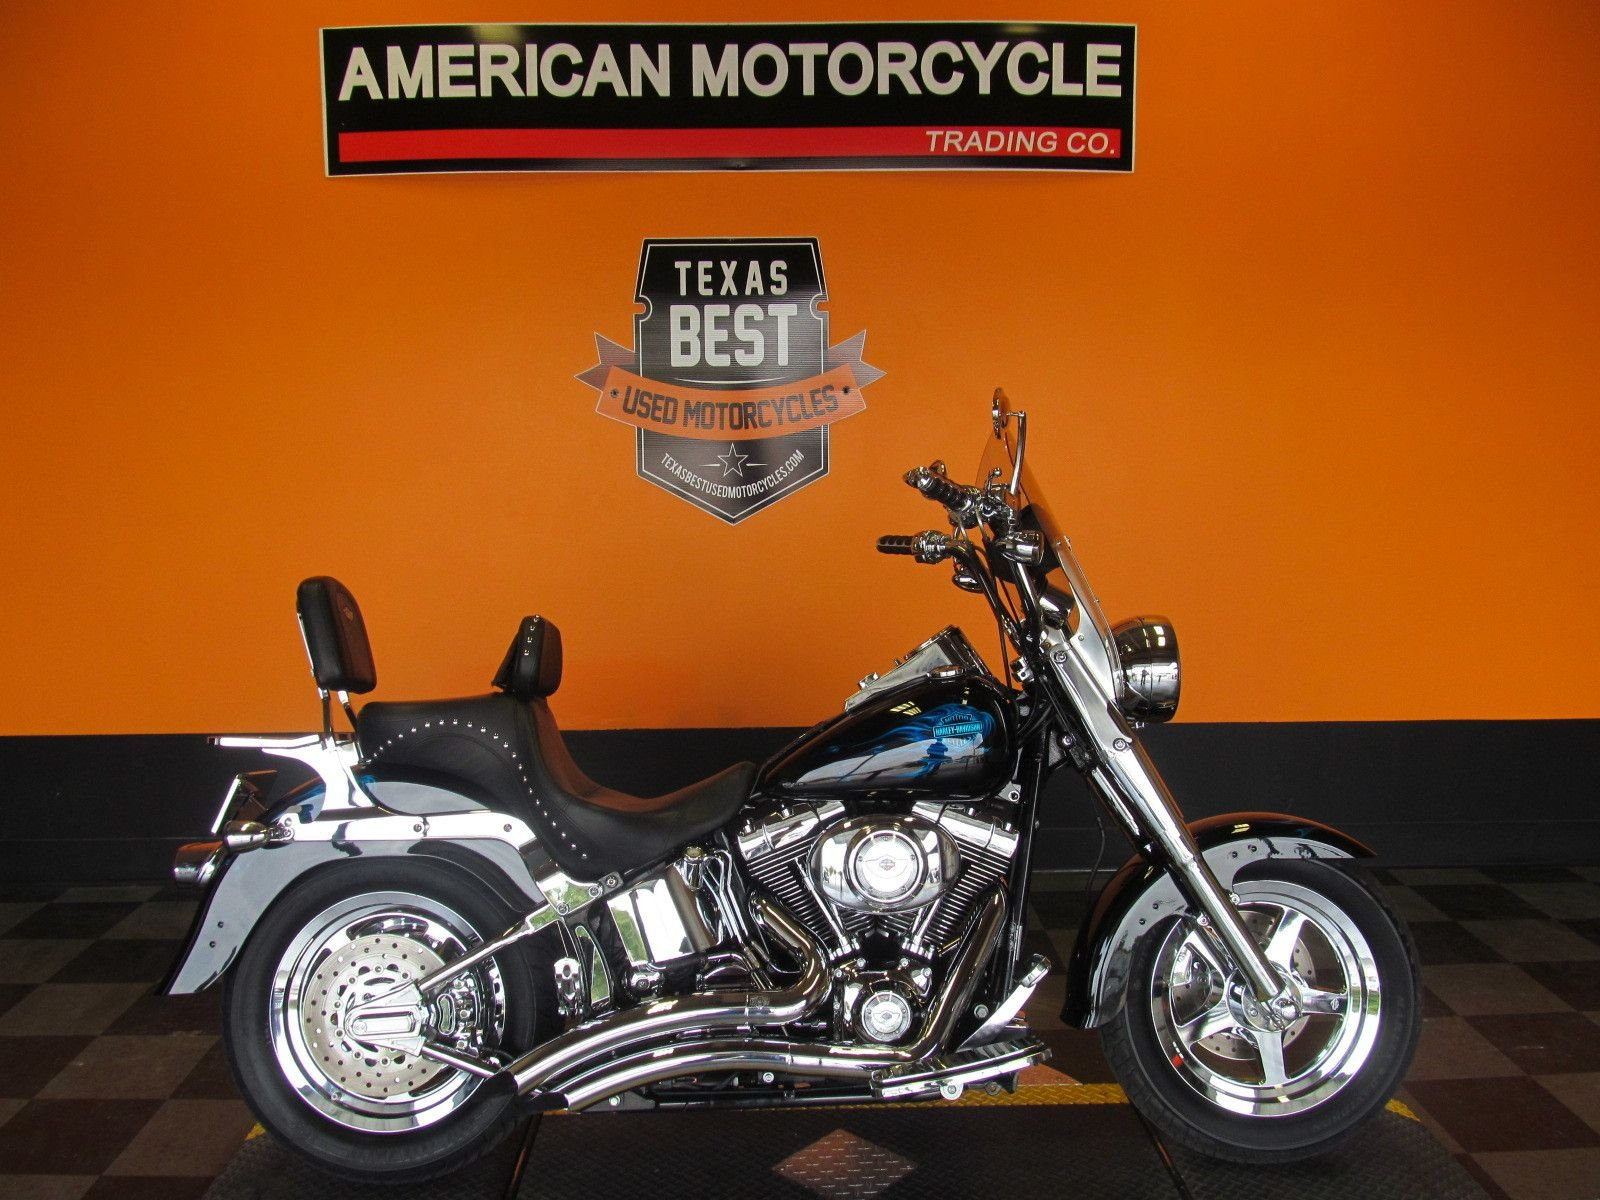 2003 harley davidson softail fat boy flstf